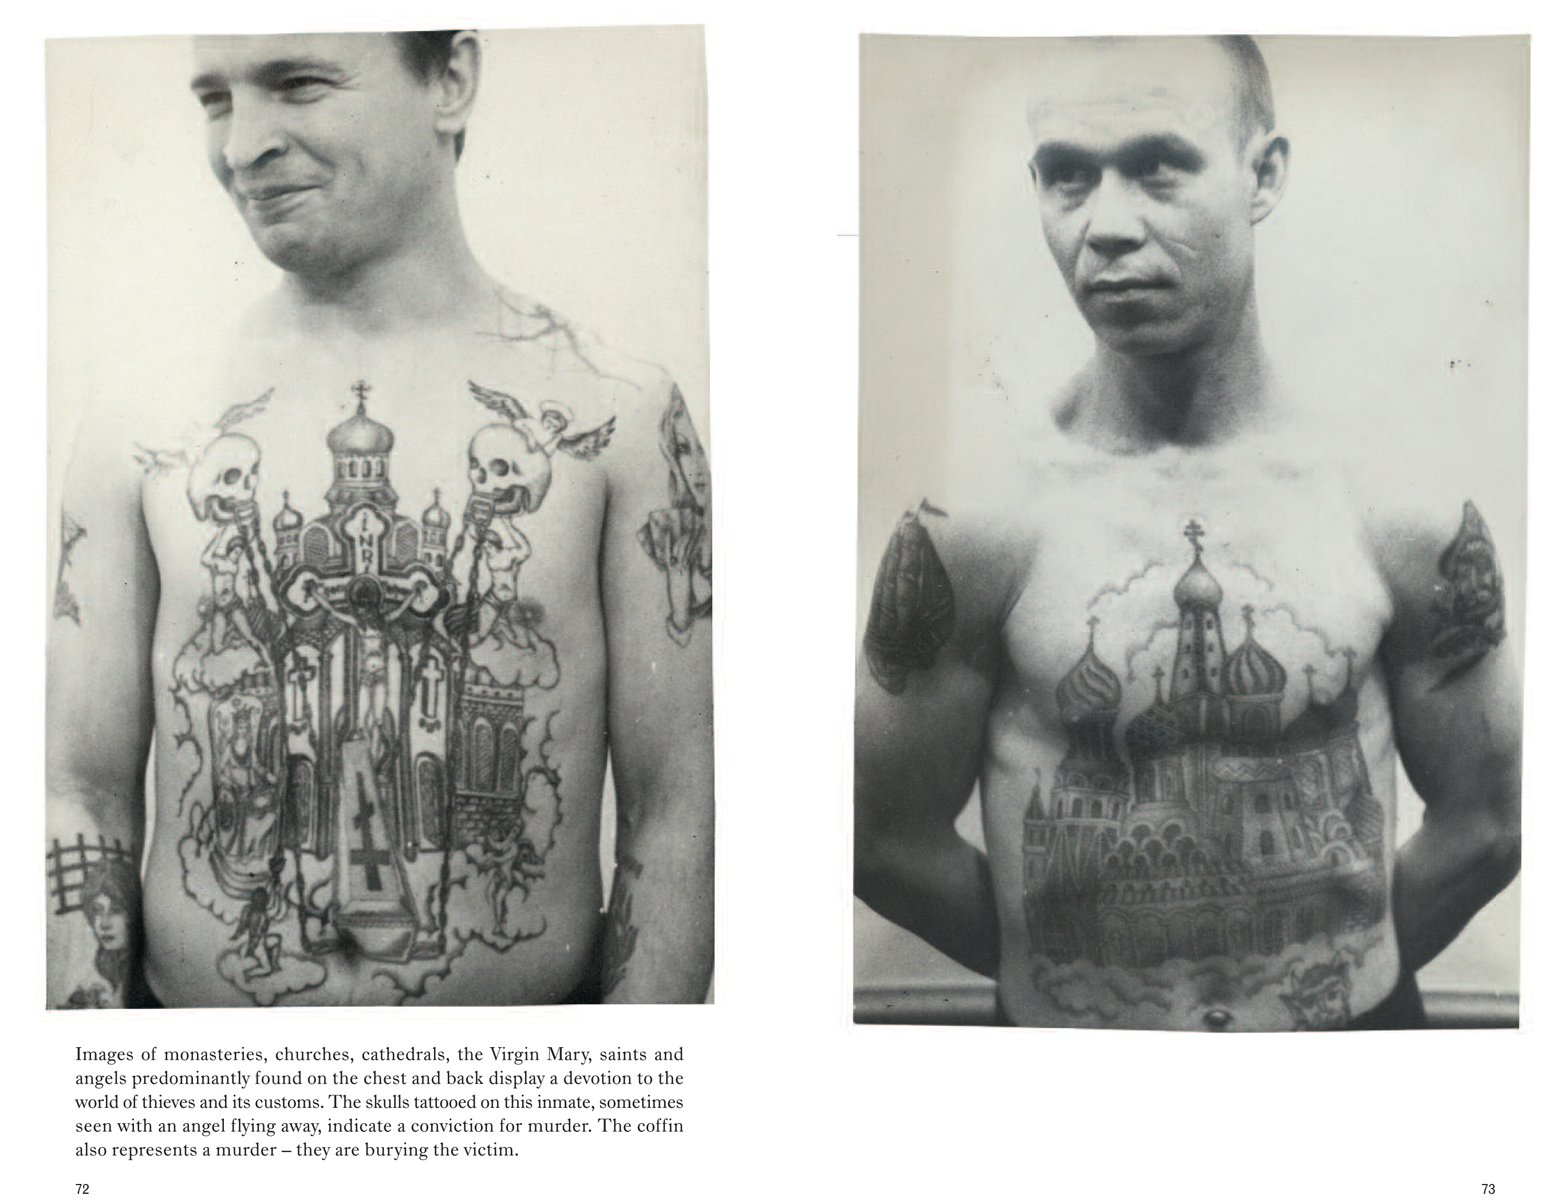 tattoos and criminal behavior essay But, he argued, there was also a second group, where the essential cause for habitual criminal behavior lies in the psychopathy itself,  jailhouse tattoos,.